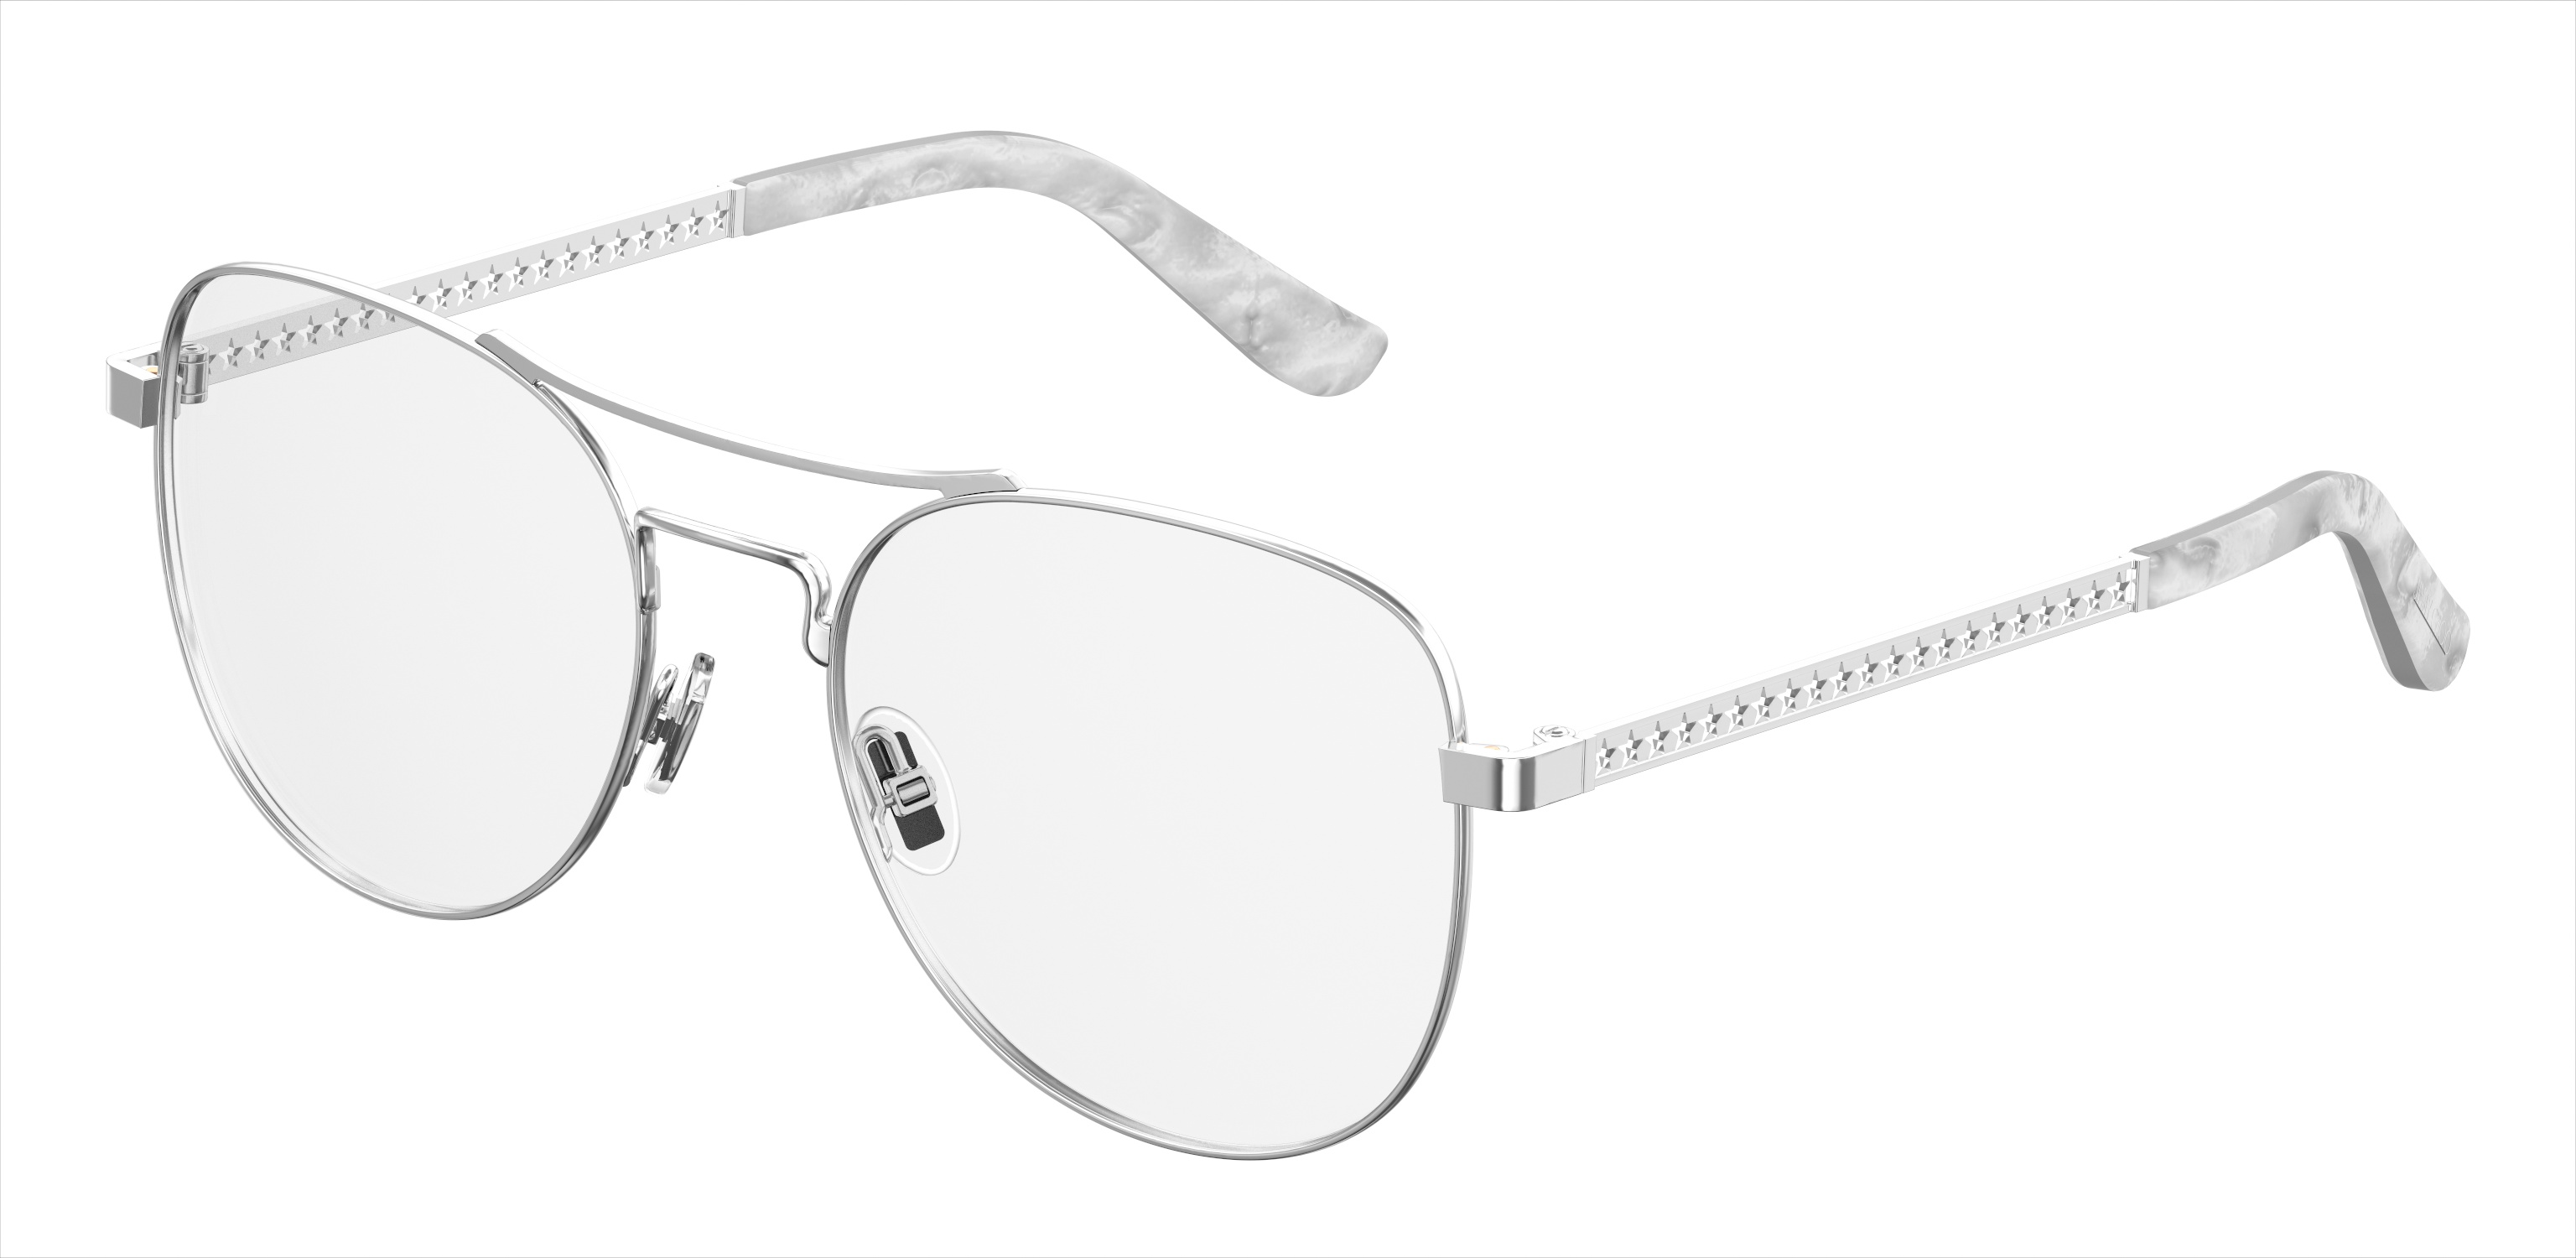 feature story envision Ray-Ban Sunglasses for Women mod jc 200